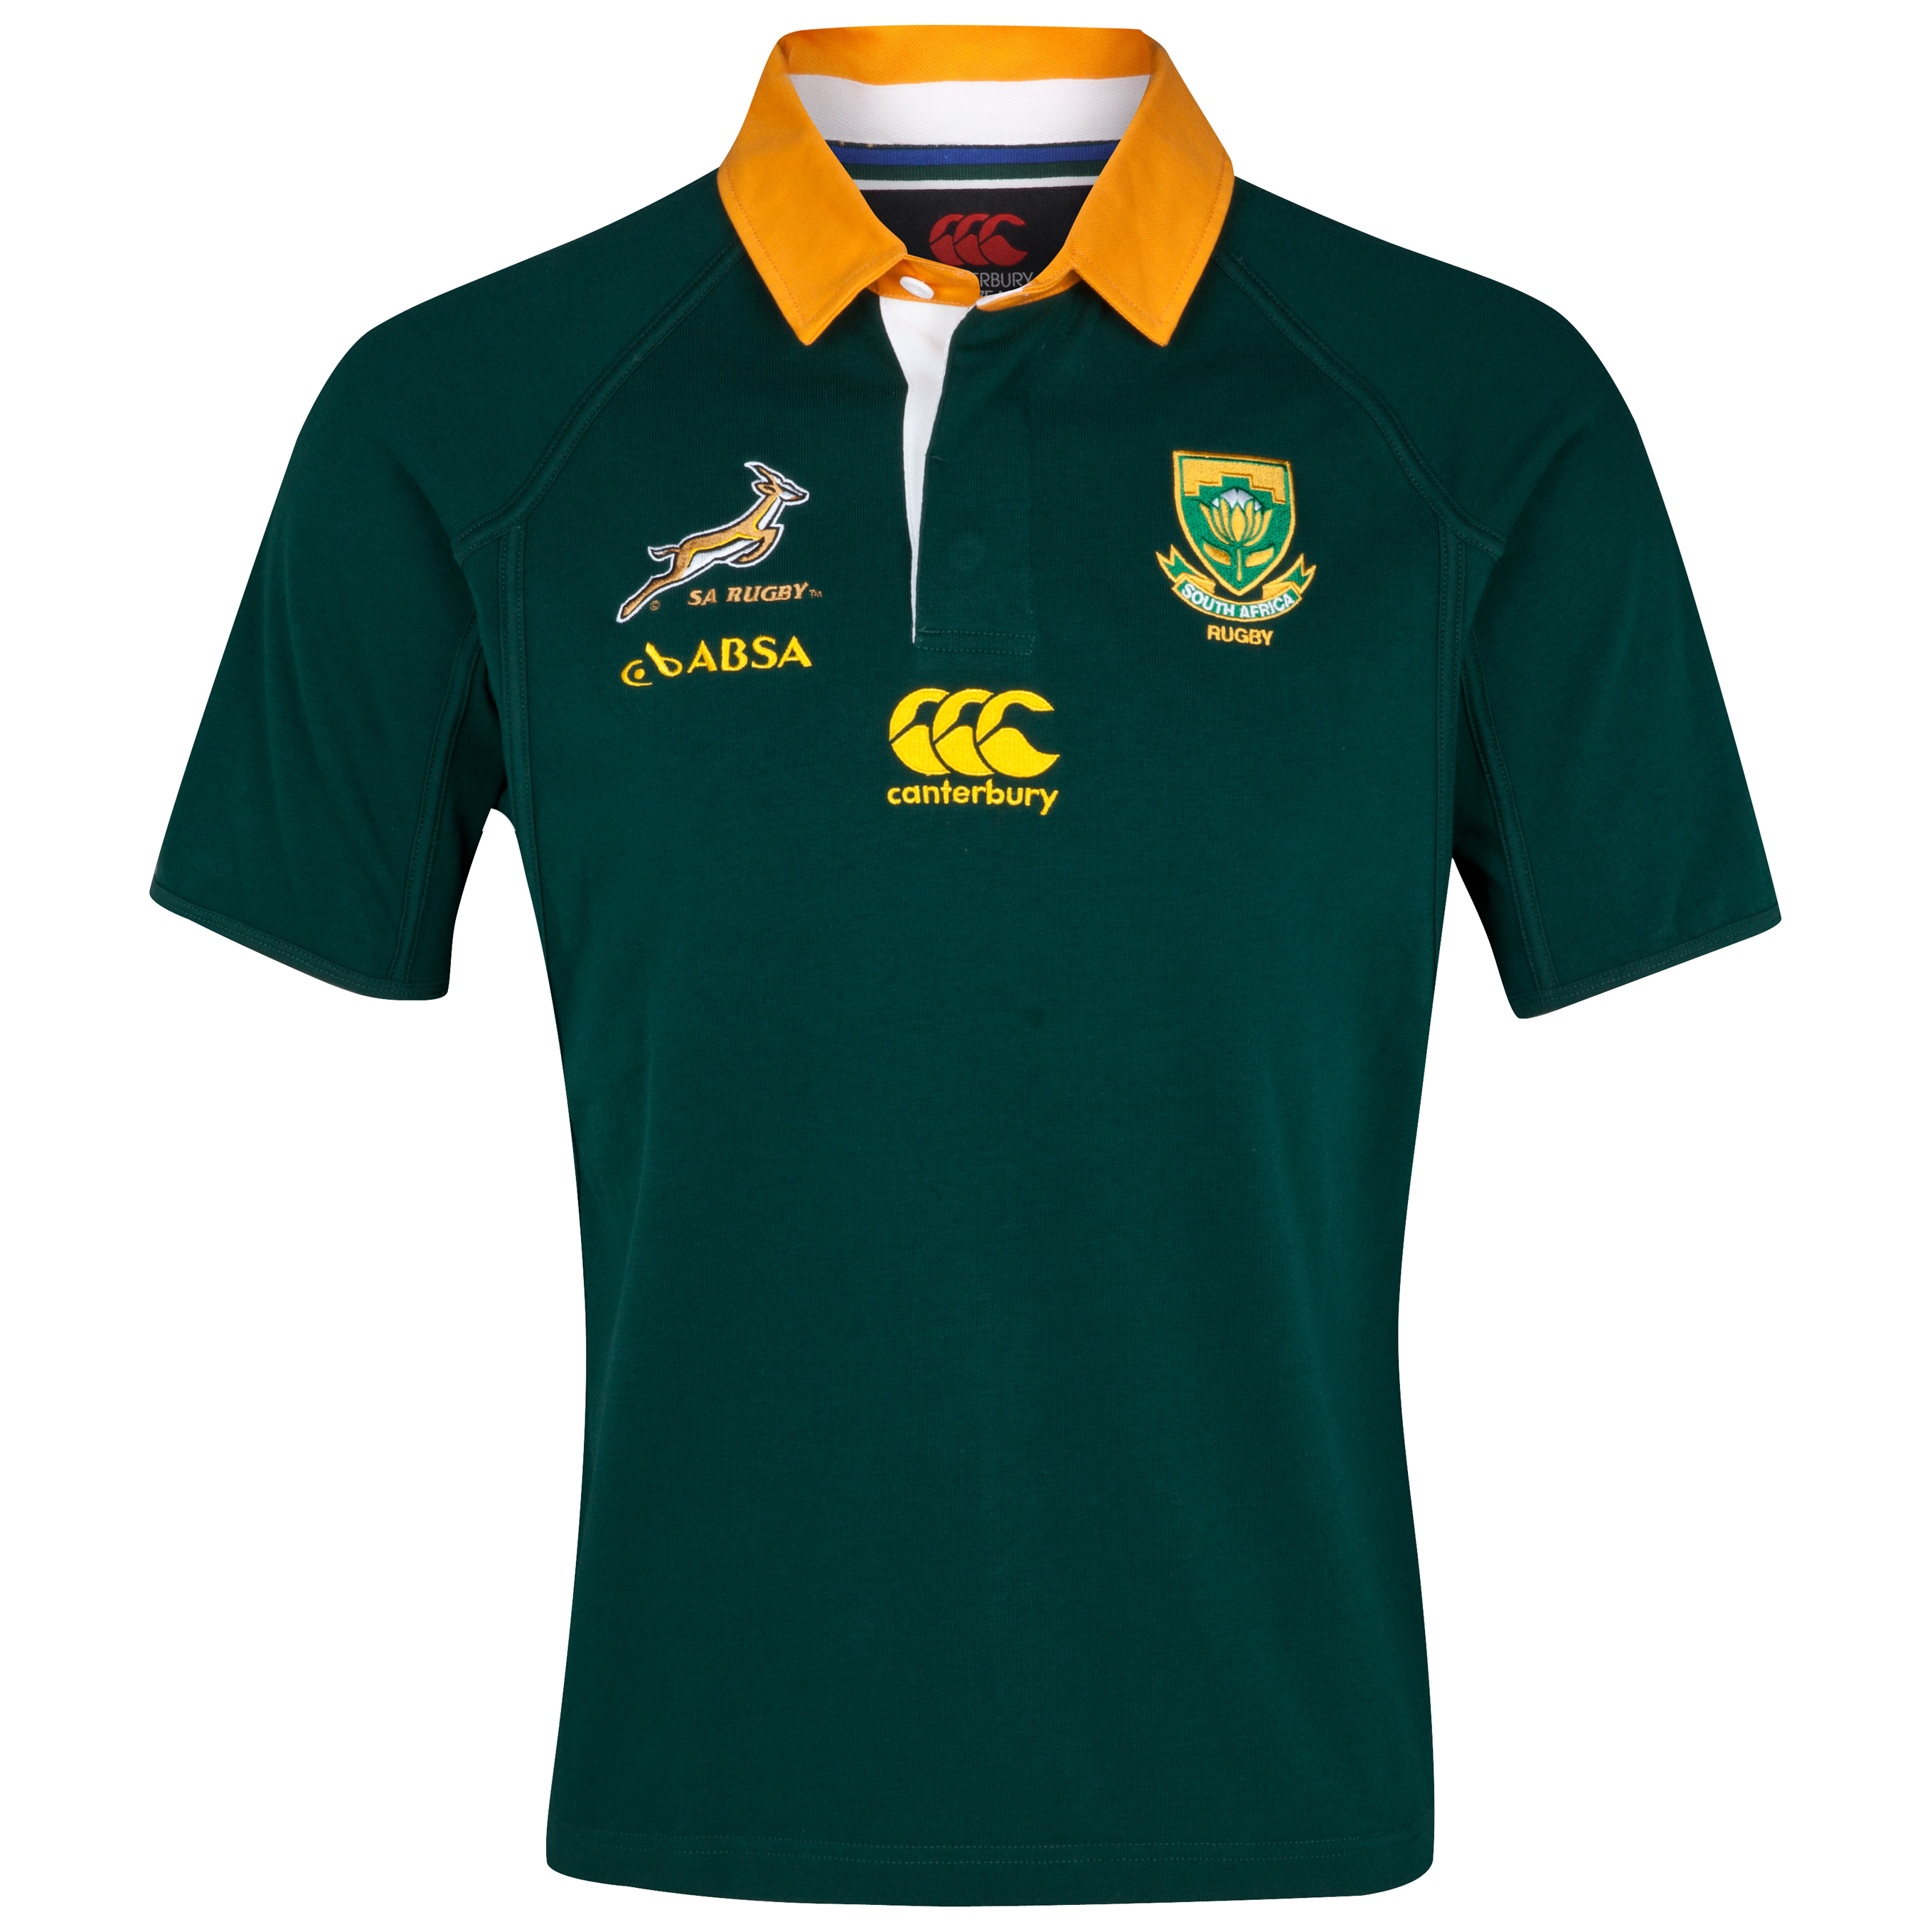 Springboks Home Classic Shirt 2011/12 - Bottle Green